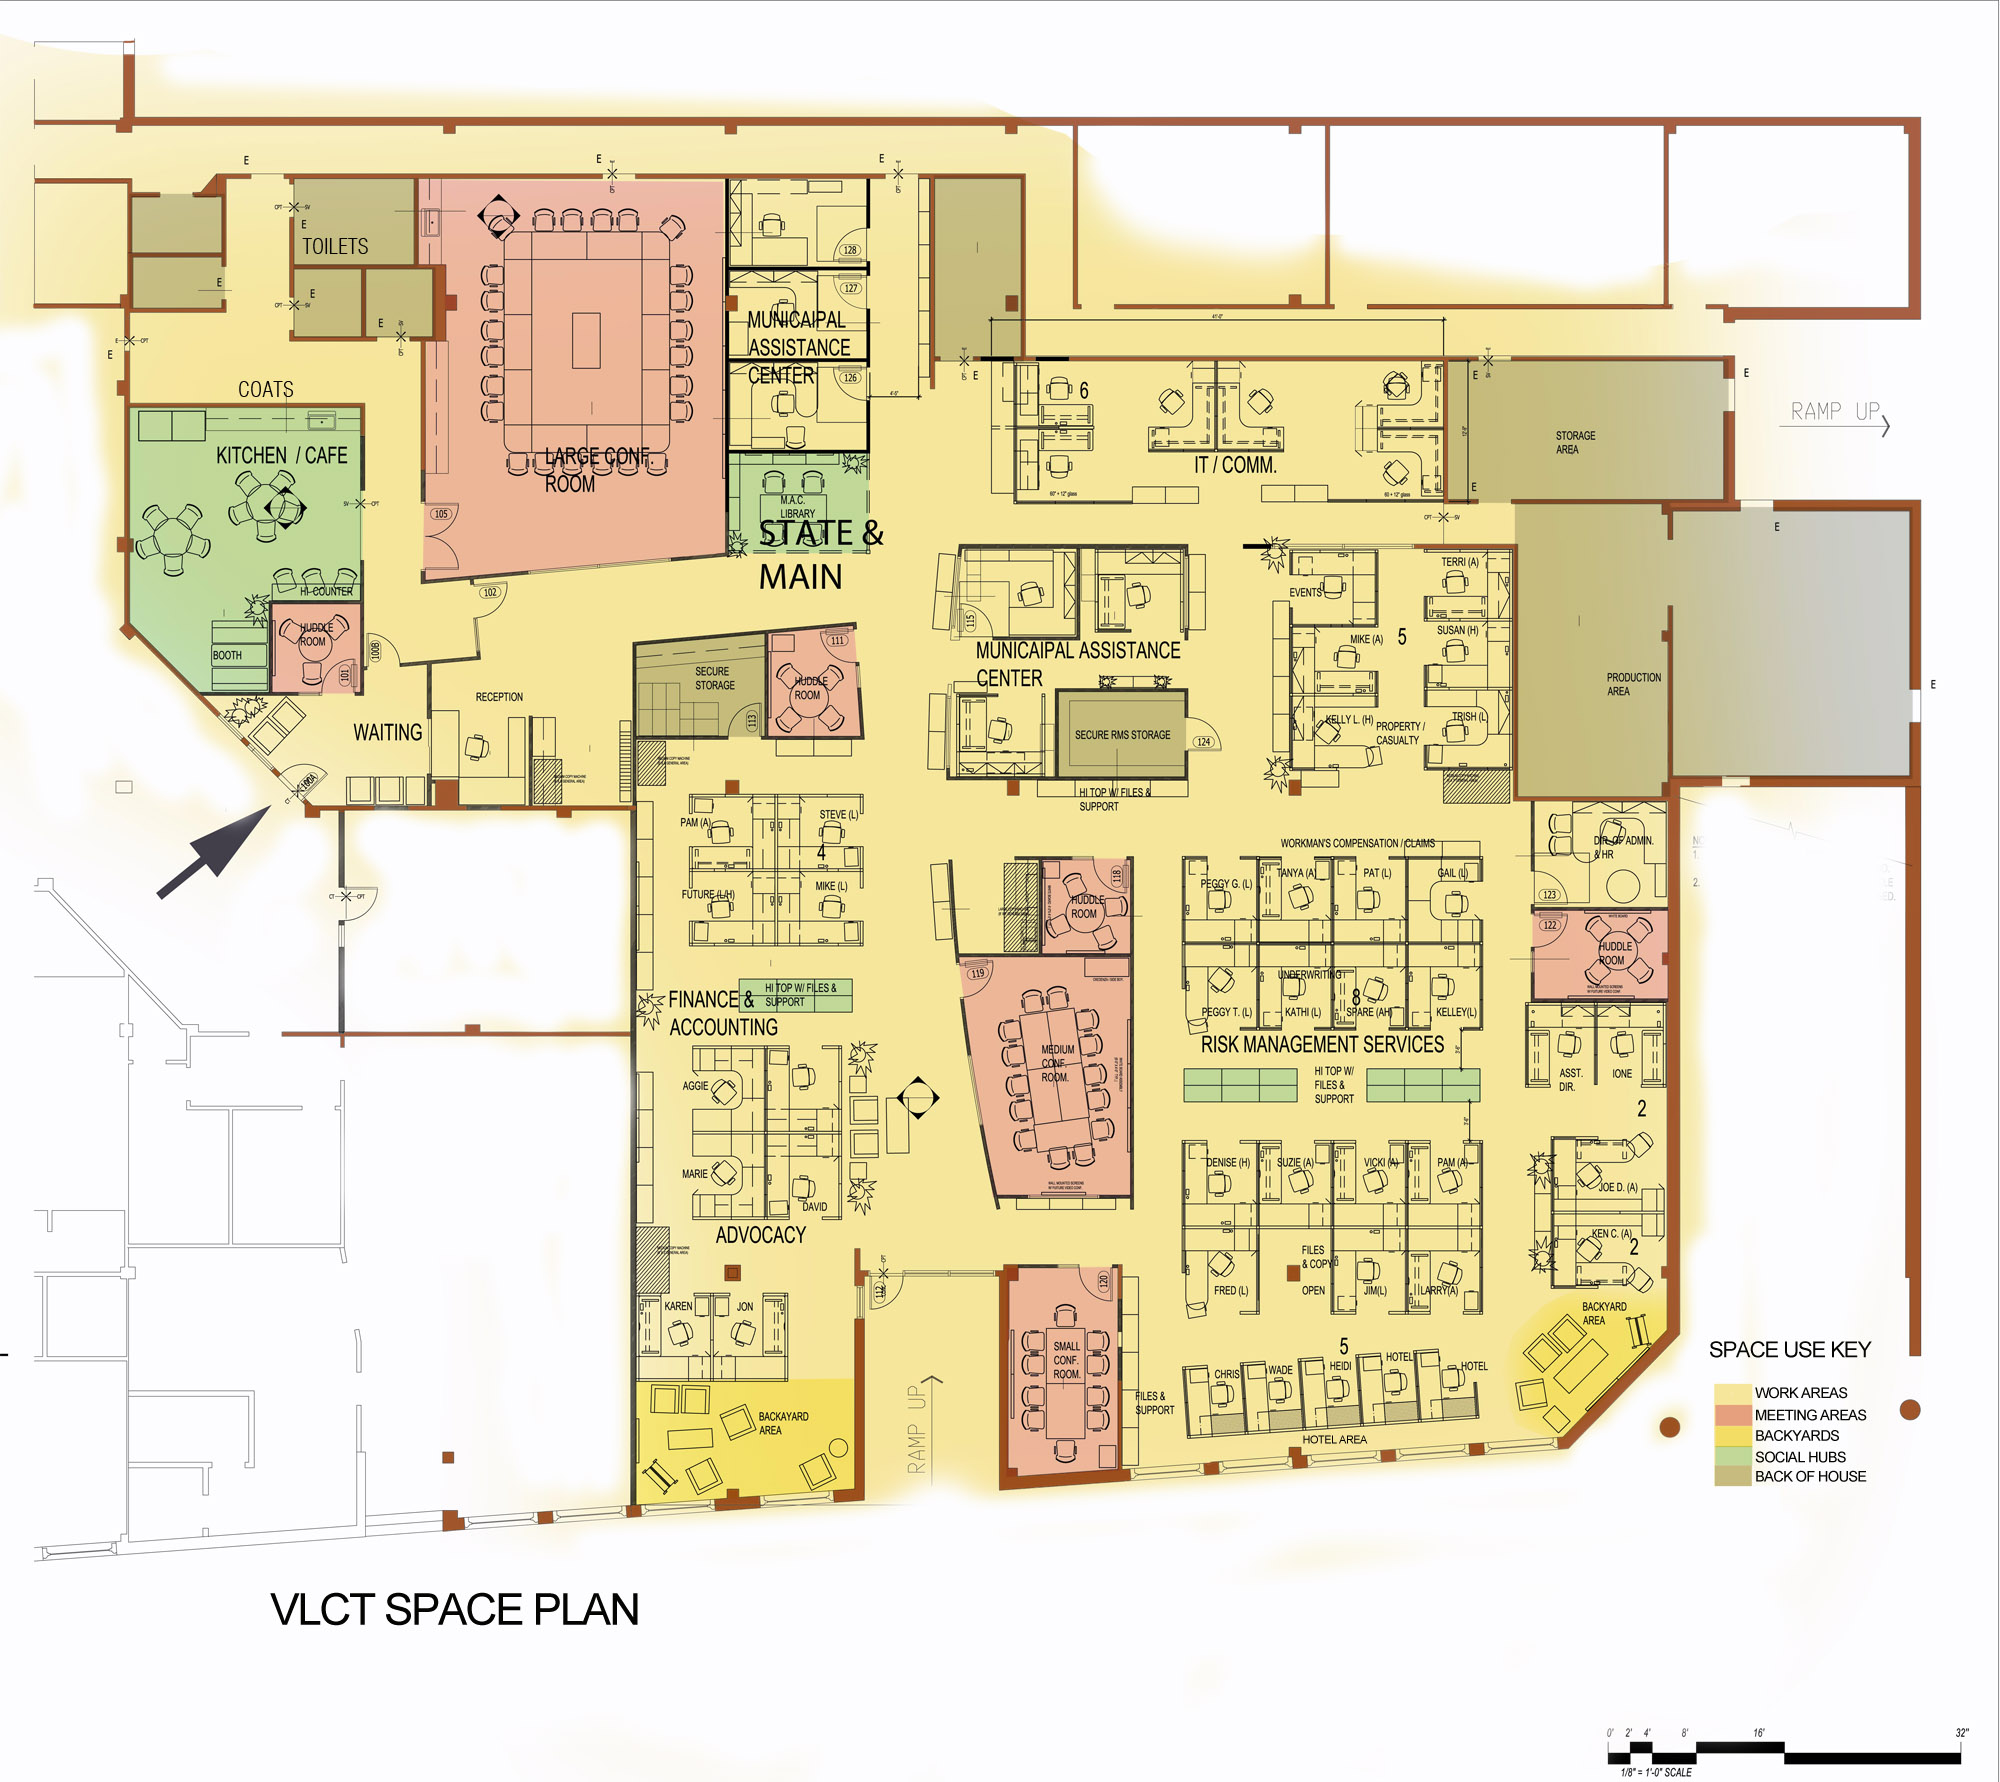 Final wall and furniture plan - Vermont League of Cities and Towns